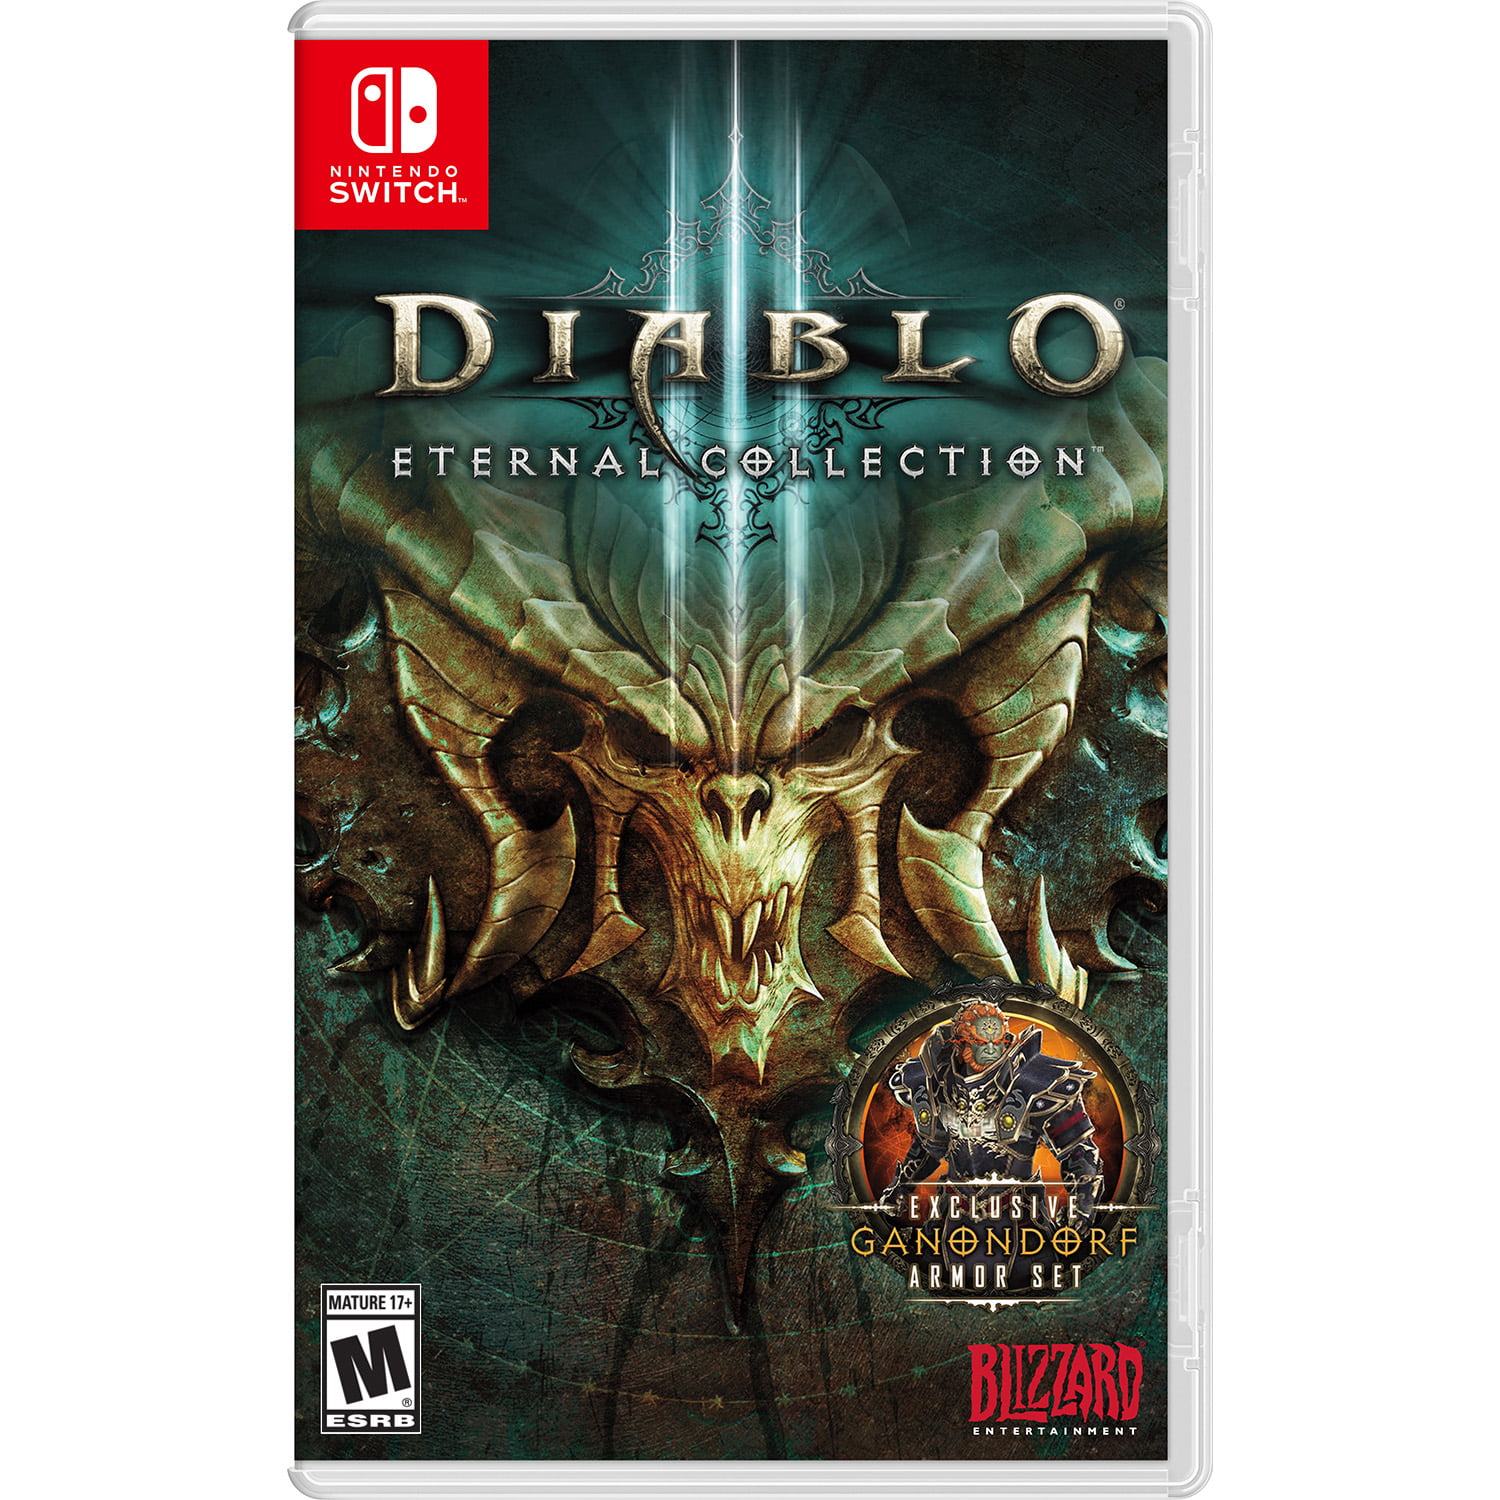 Diablo III Eternal Collection, Blizzard Entertainment, Nintendo Switch, 047875883437